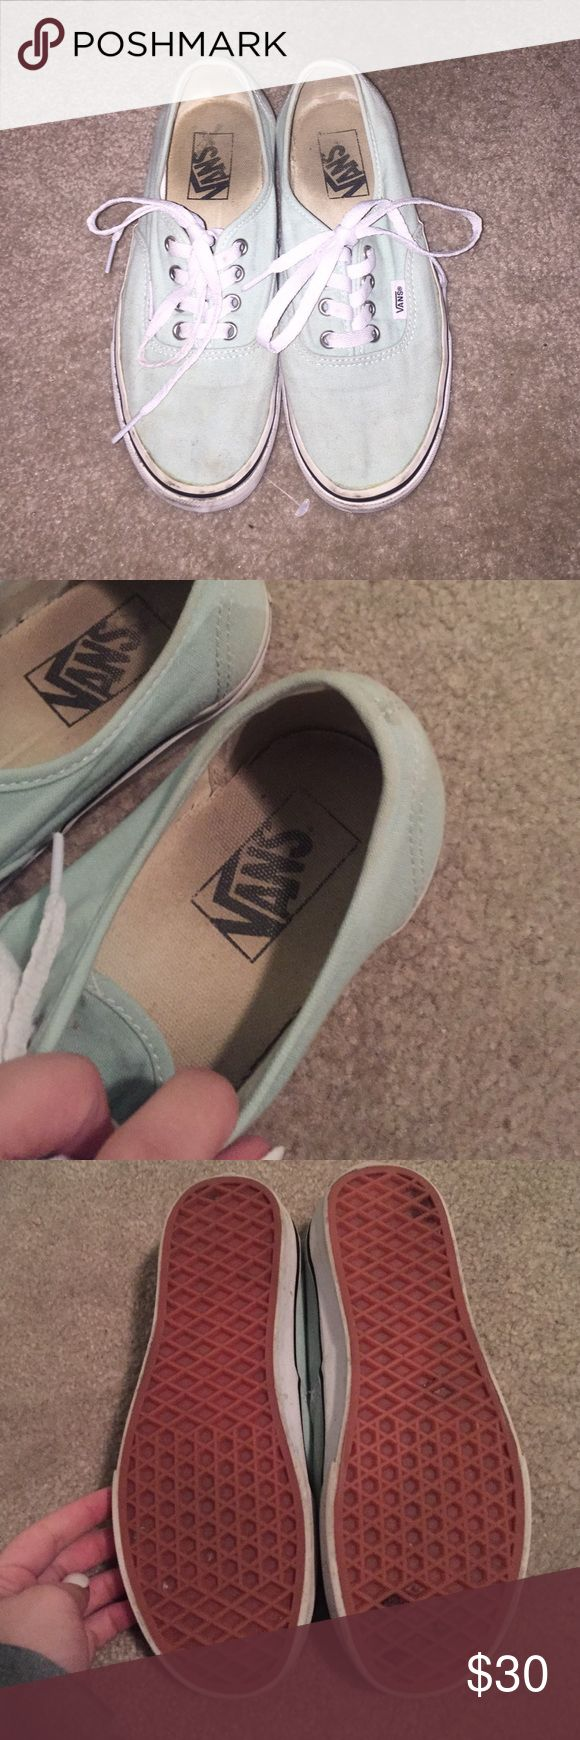 Mint vans Mint vans, a few scuffs on the toe that should come out in the wash! Vans Shoes Sneakers